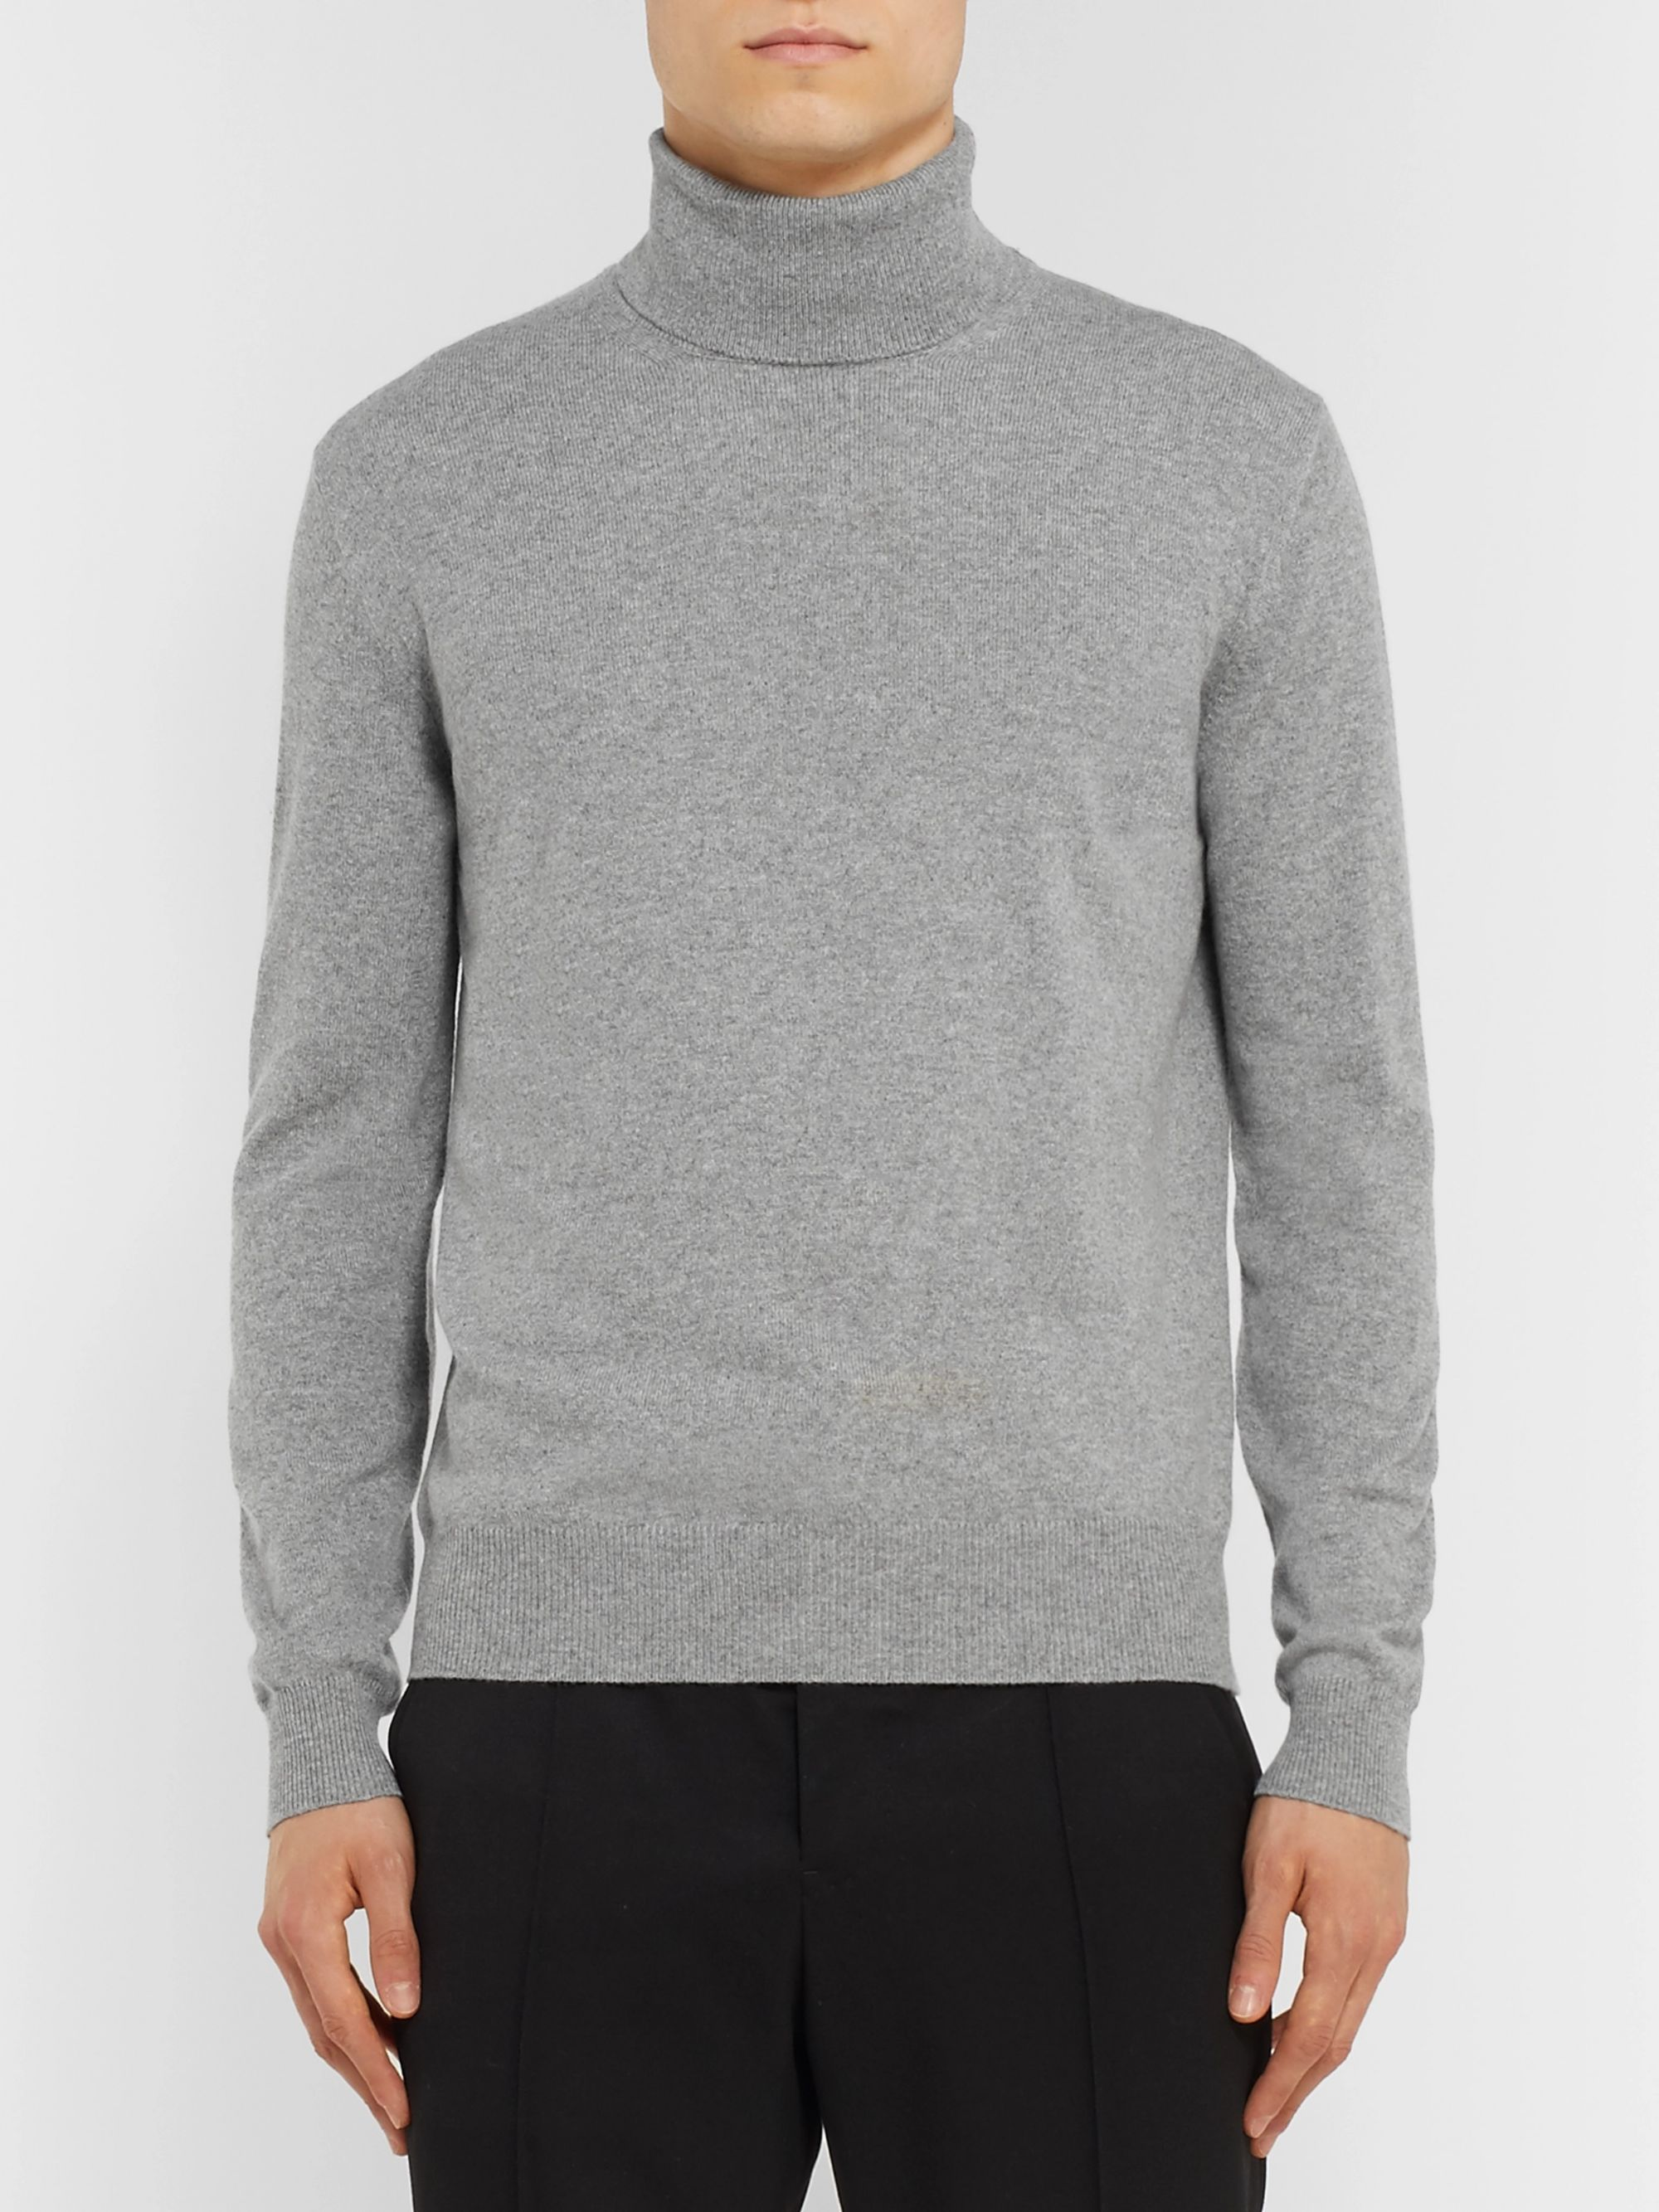 Loro Piana Slim-Fit Baby Cashmere Rollneck Sweater